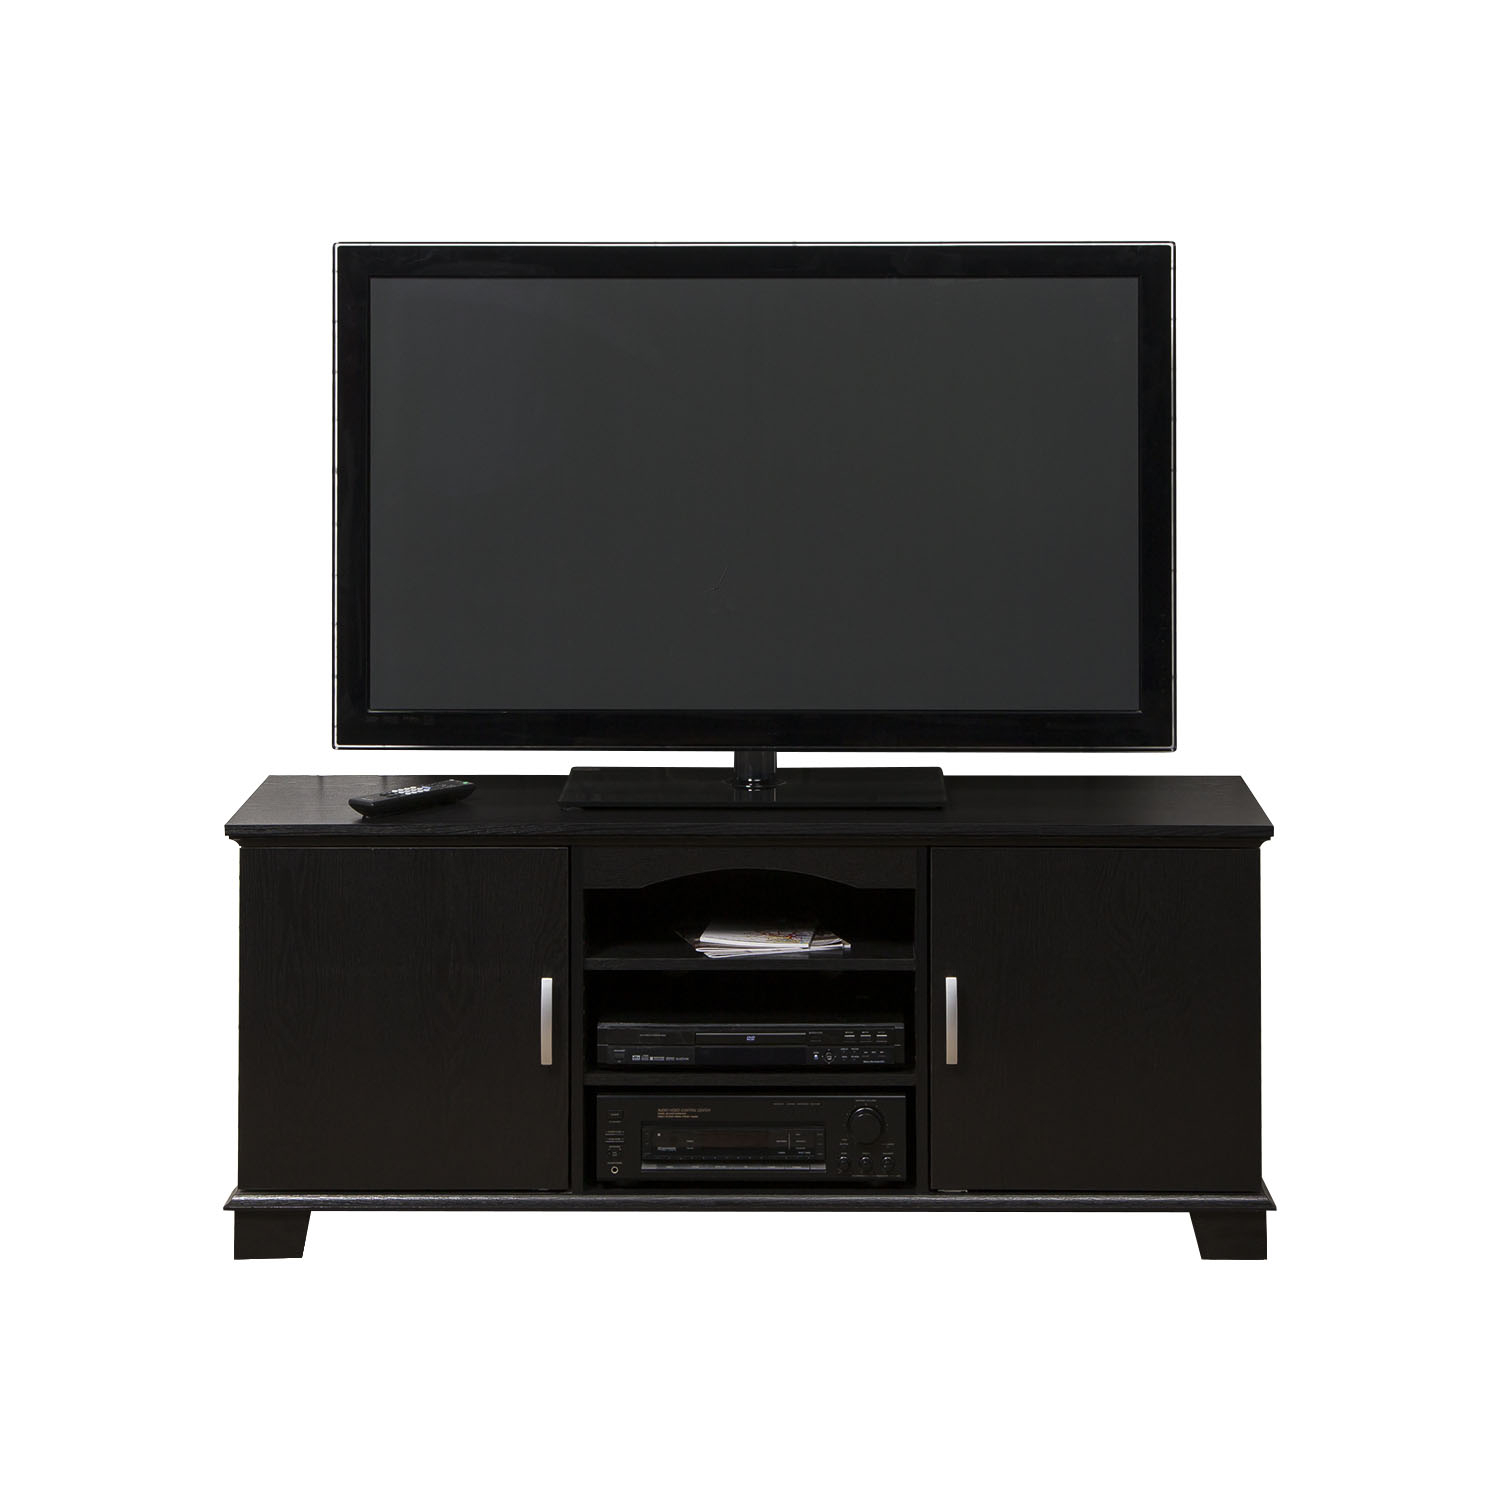 "Walker Edison Black Tv Stand For Tvs Up To 65"", Multiple Colors throughout Century Blue 60 Inch Tv Stands (Image 28 of 30)"